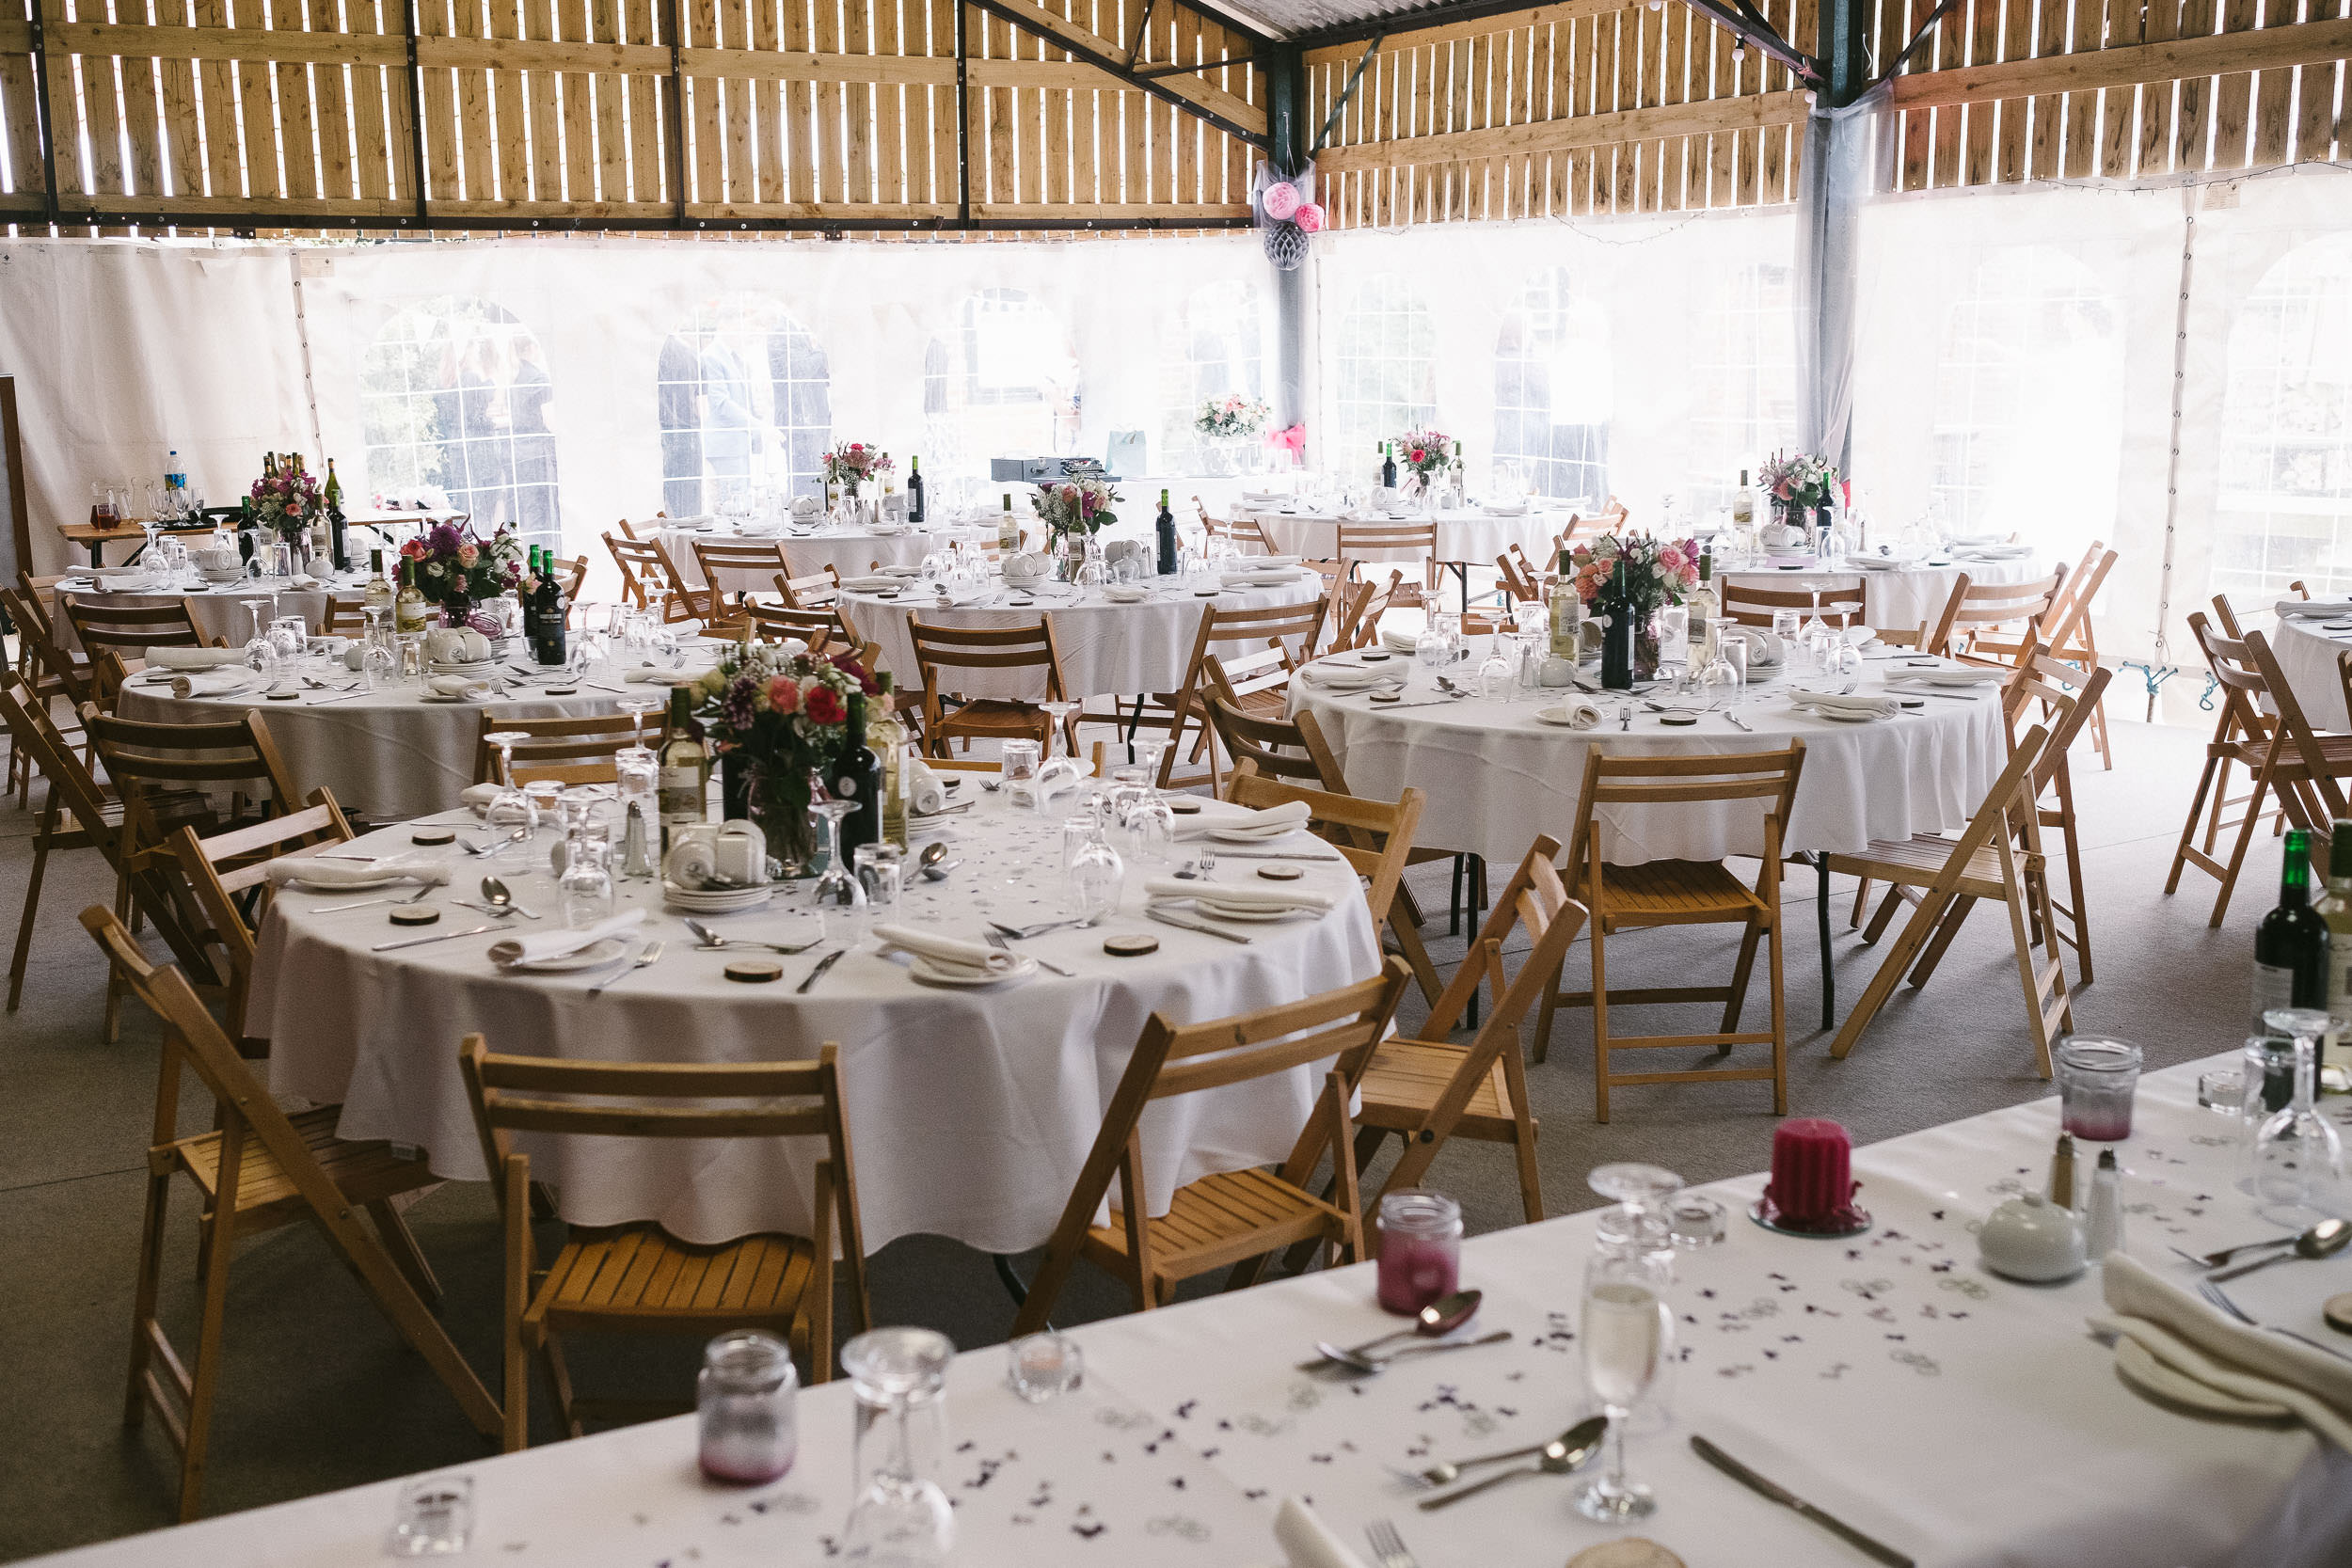 The Open Barn, set up for Katy and Tom's wedding